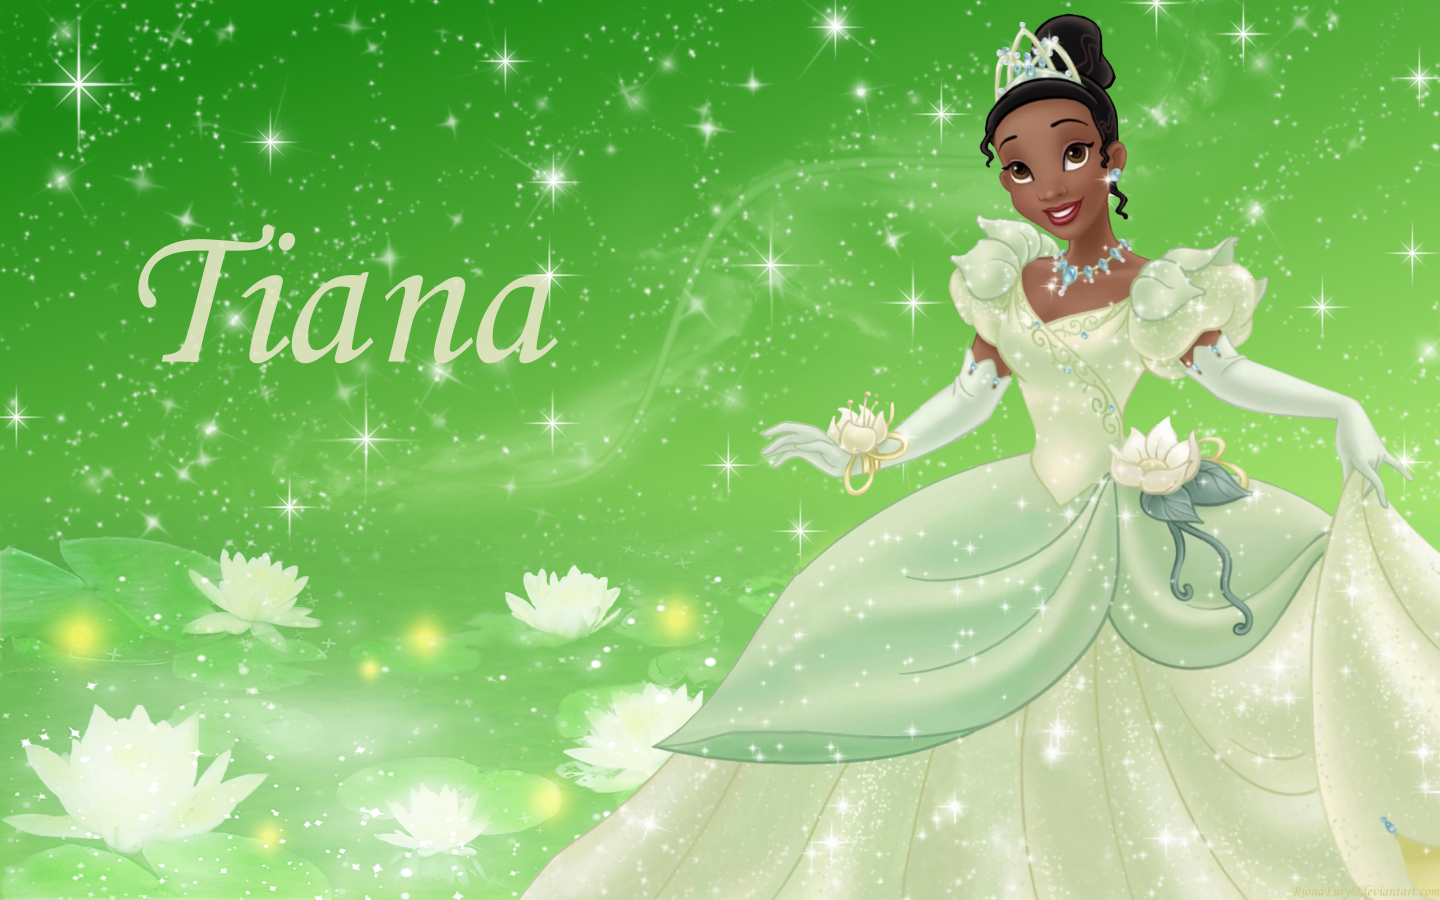 Recommended: The Princess And The Frog Wallpapers 27/05/2015, Maud Meder